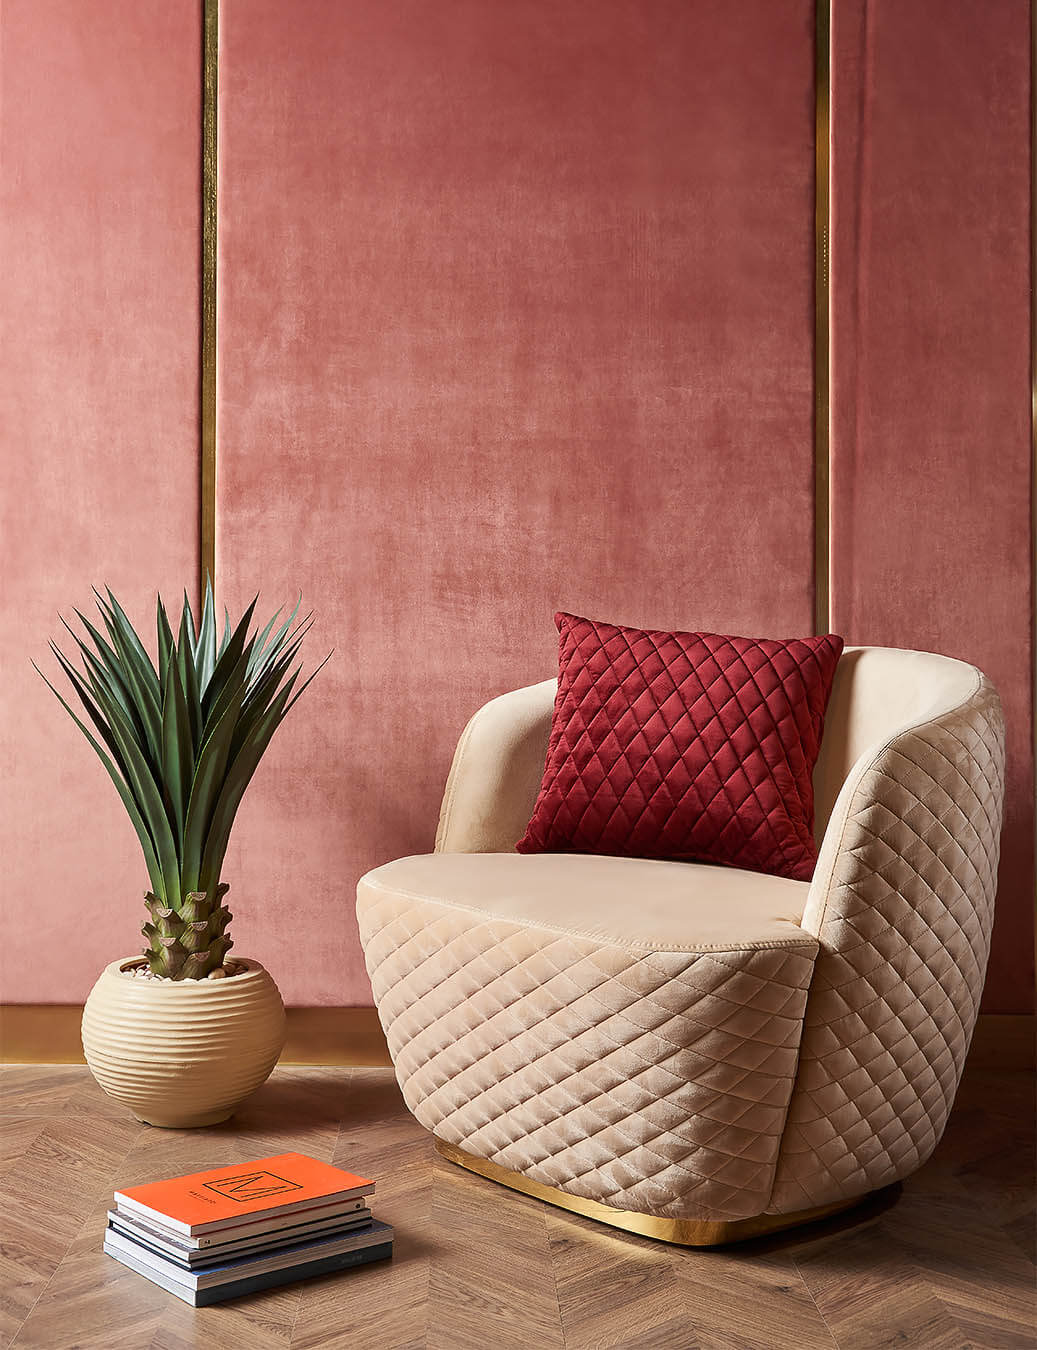 Richie Furniture -textured chair Setup - Mohamed Abdel-Hady Photography